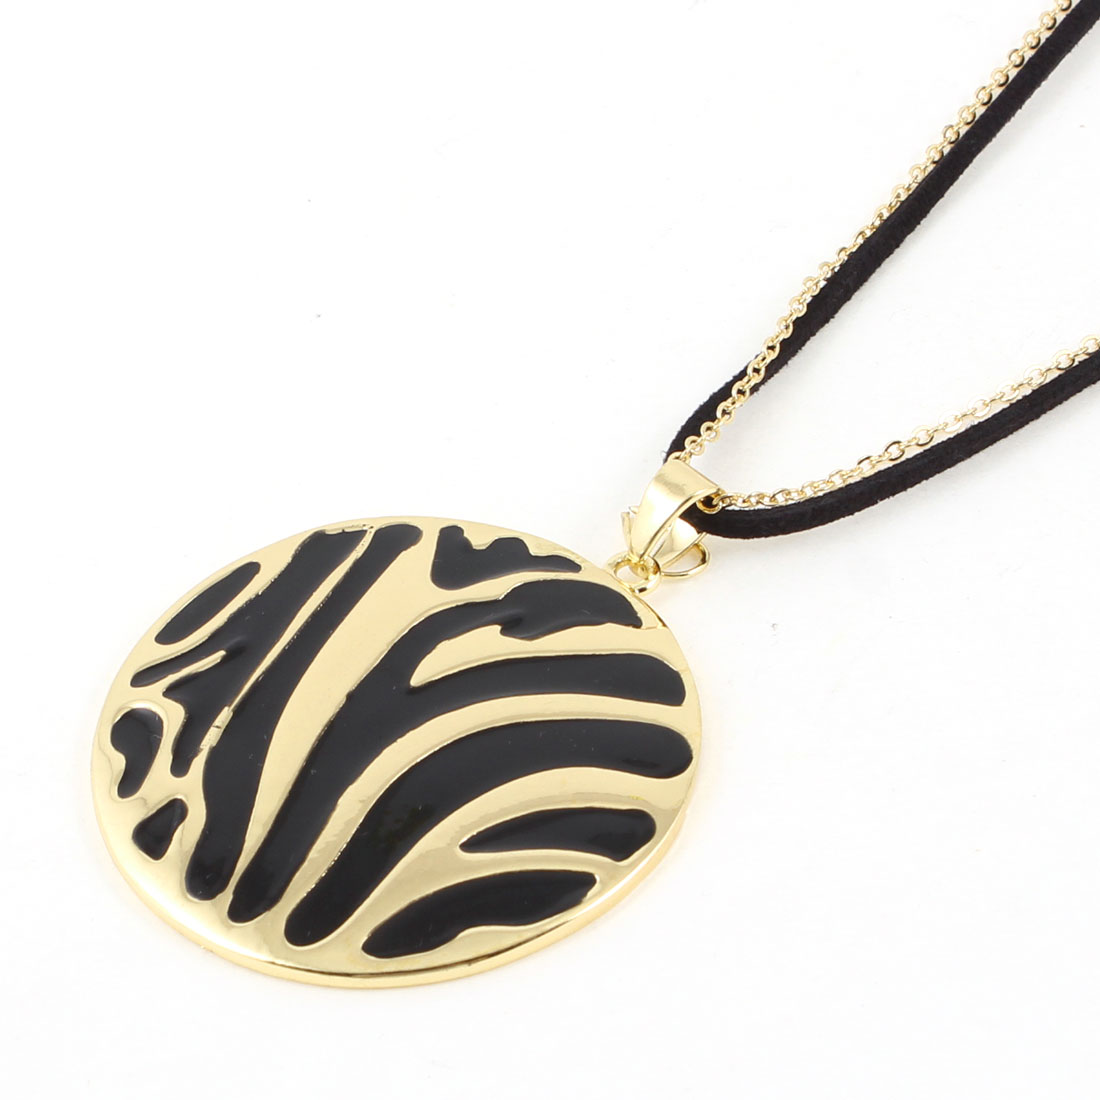 Black Gold Tone Stripe Round Pendant Sweater Chain Necklace for Lady Ladies